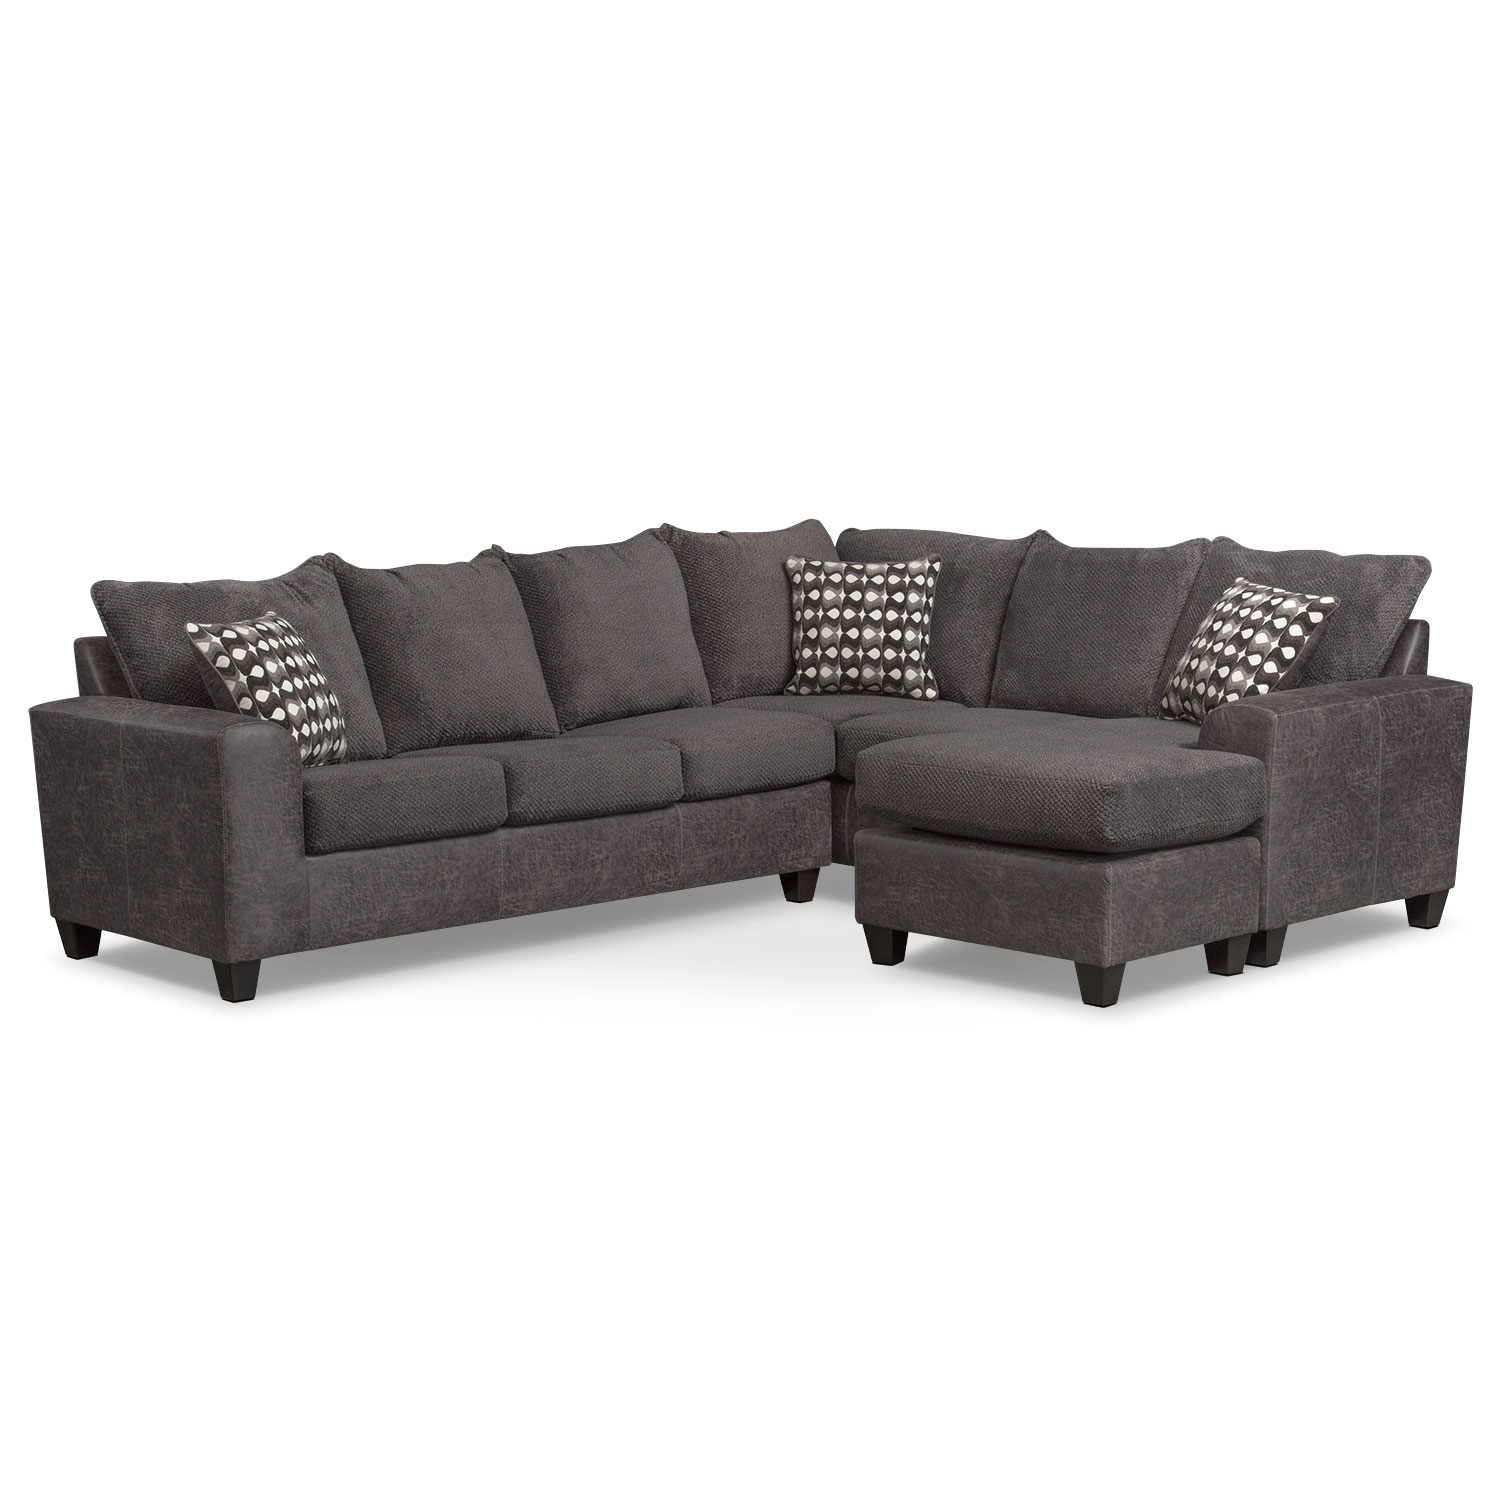 Brando 3 Piece Sectional With Modular Chaise – Smoke | American With Aurora 2 Piece Sectionals (View 24 of 25)